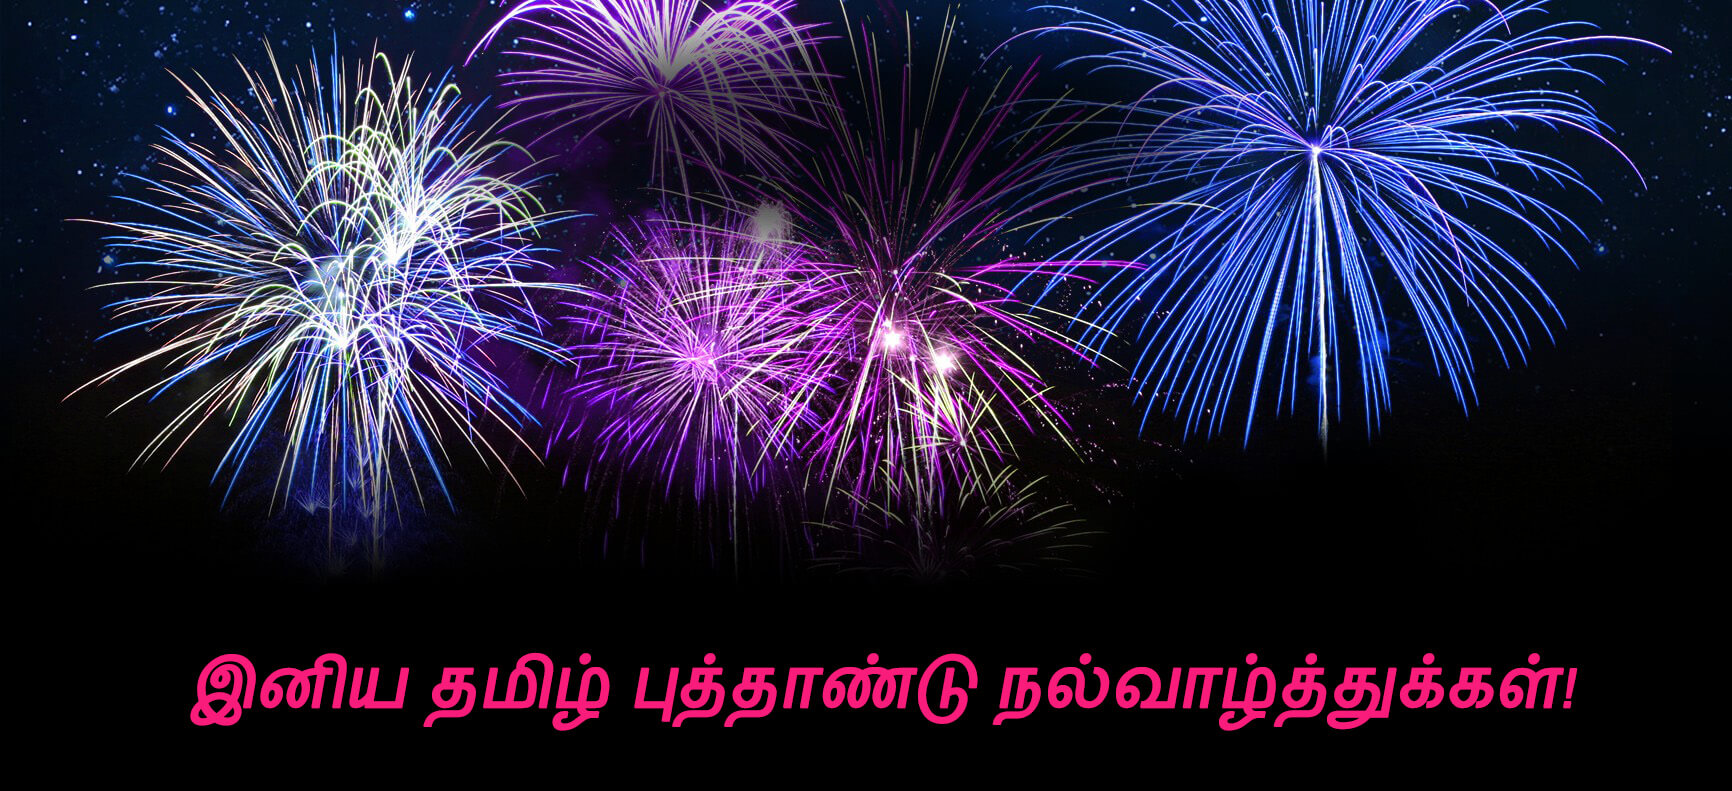 Happy tamil new year greetings puthaandu fireworks hd wallpaper kristyandbryce Image collections